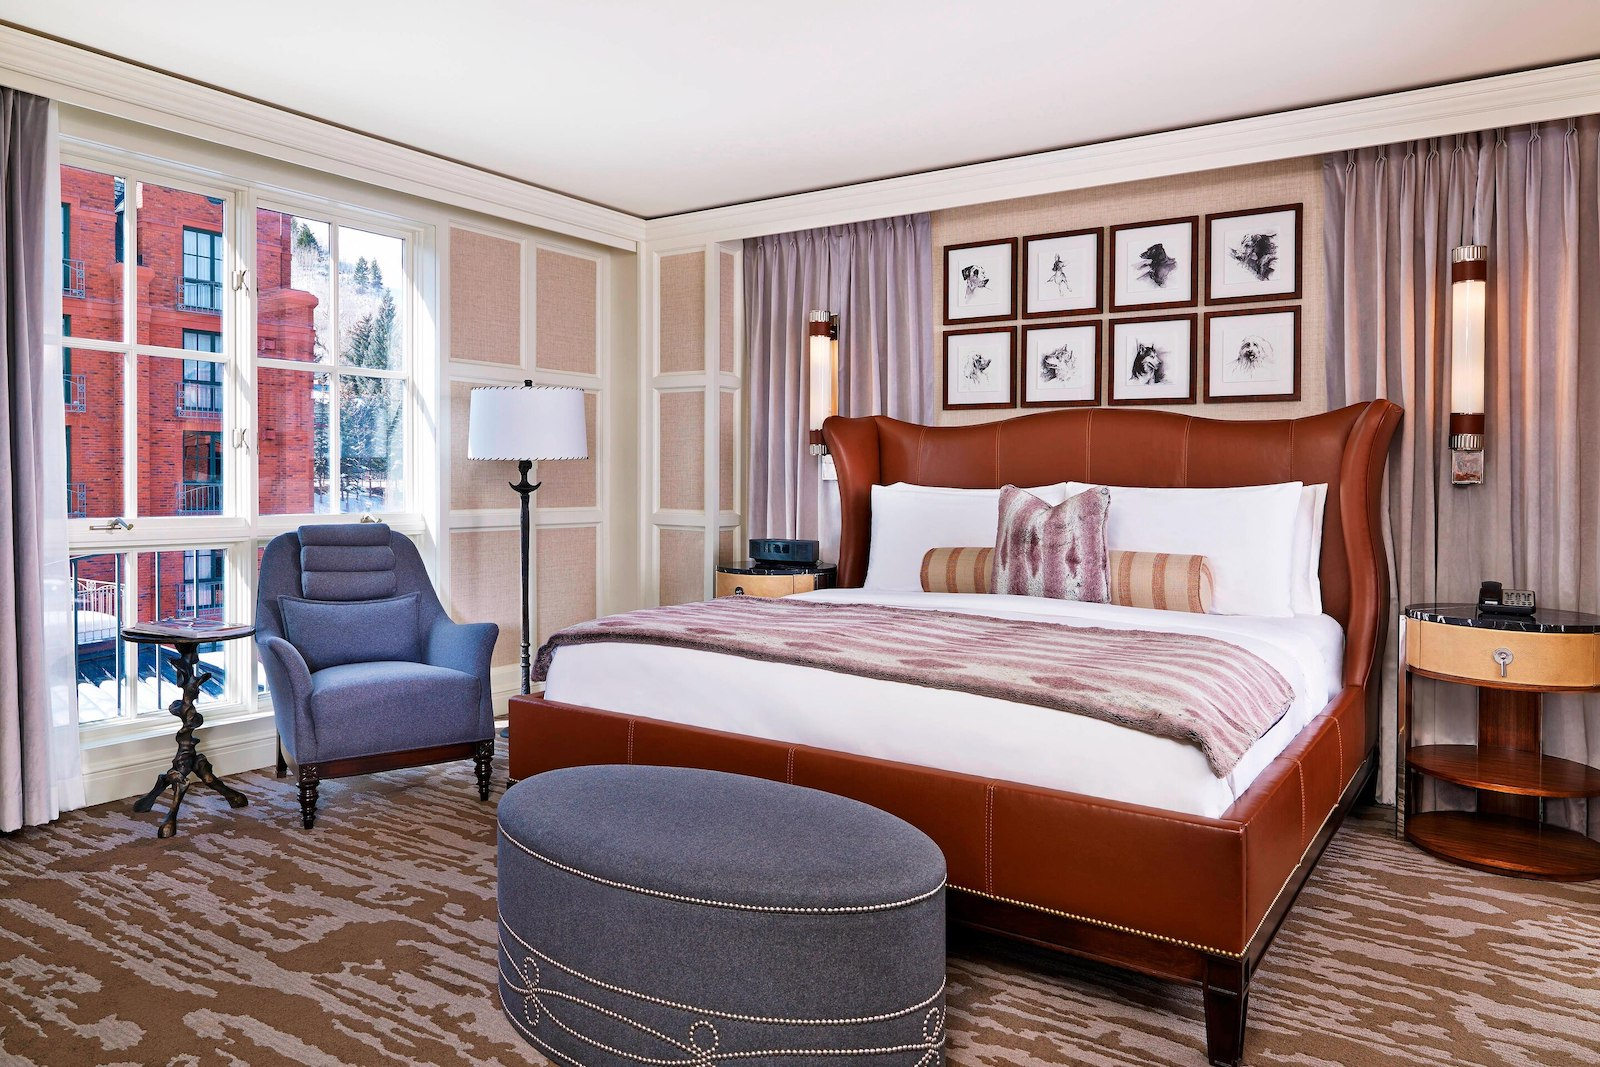 Image of a one bedroom suite at the St. Regis in Aspen, Colorado